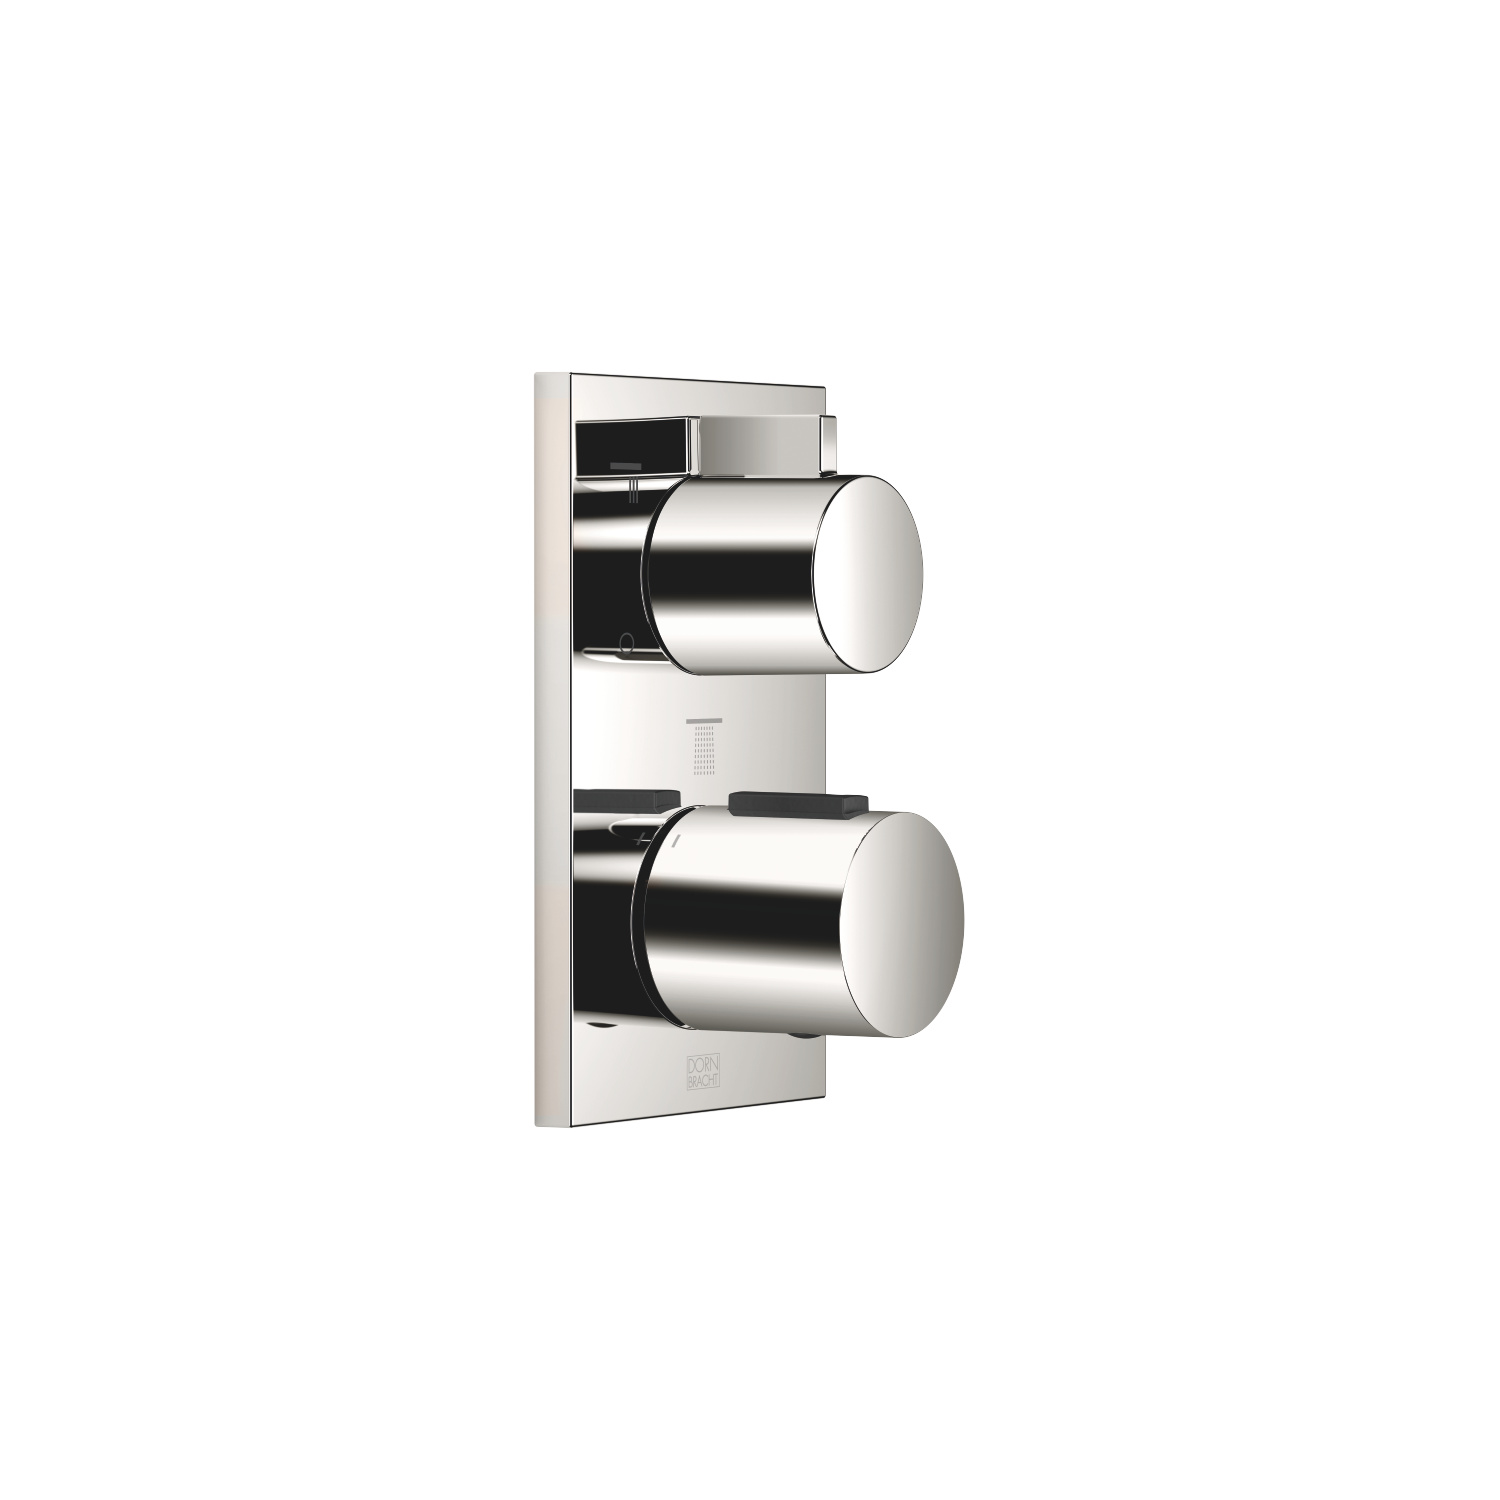 Concealed thermostat with three function volume control - platinum